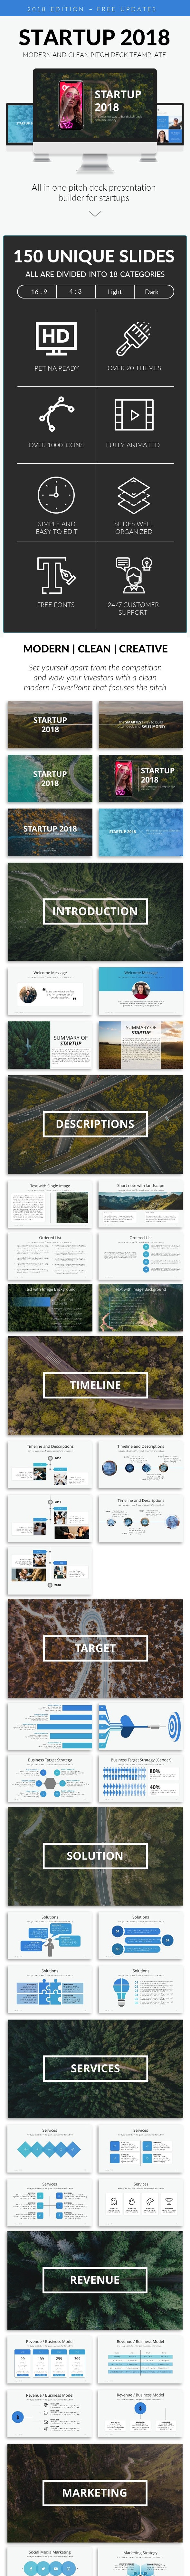 Startup 2018 - Clean Pitch Deck Powerpoint Template - Pitch Deck PowerPoint Templates